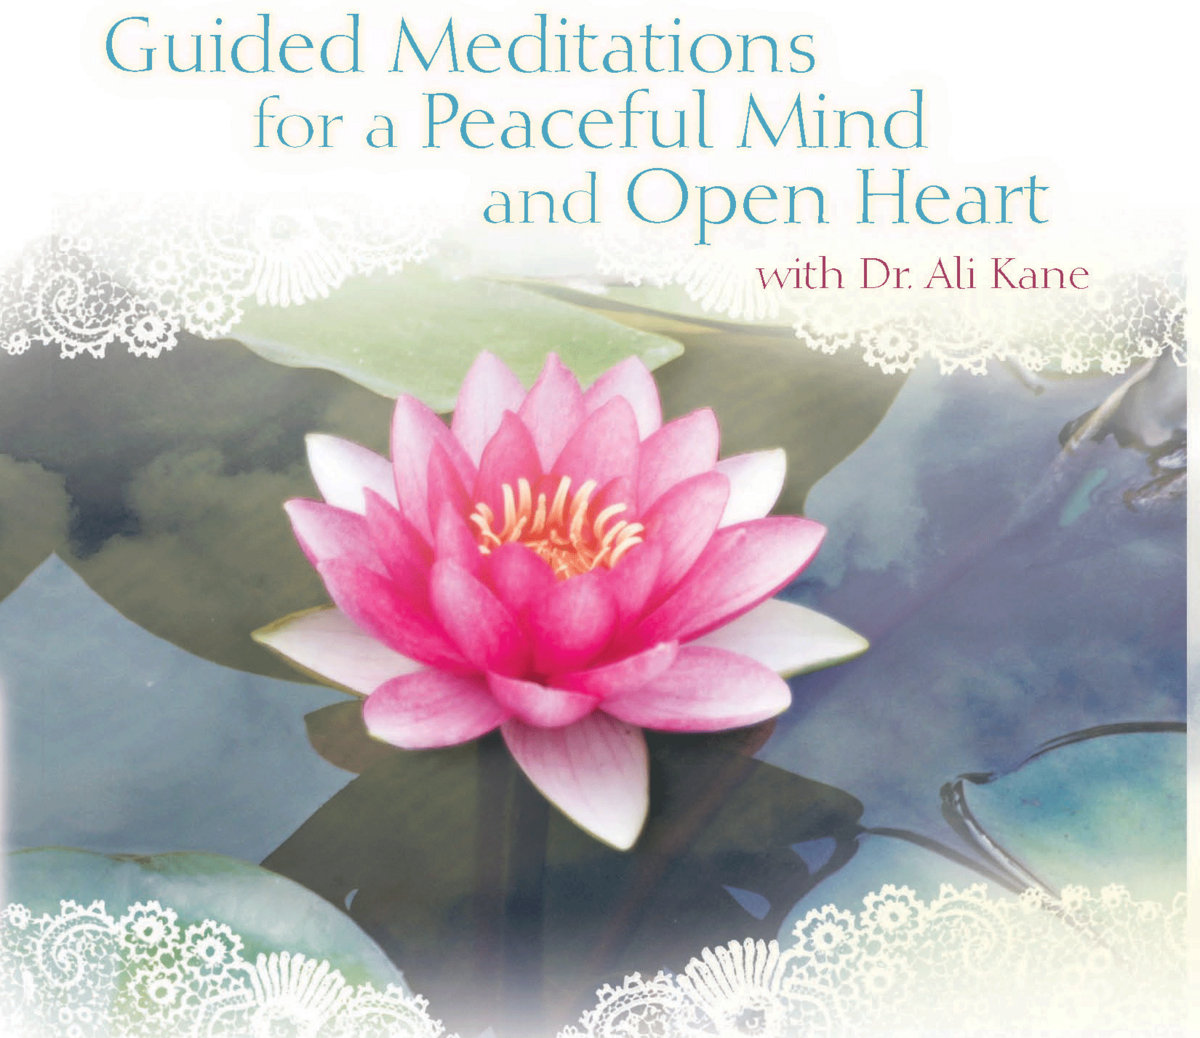 Guided Meditations for a Peaceful Mind and Open Heart ...